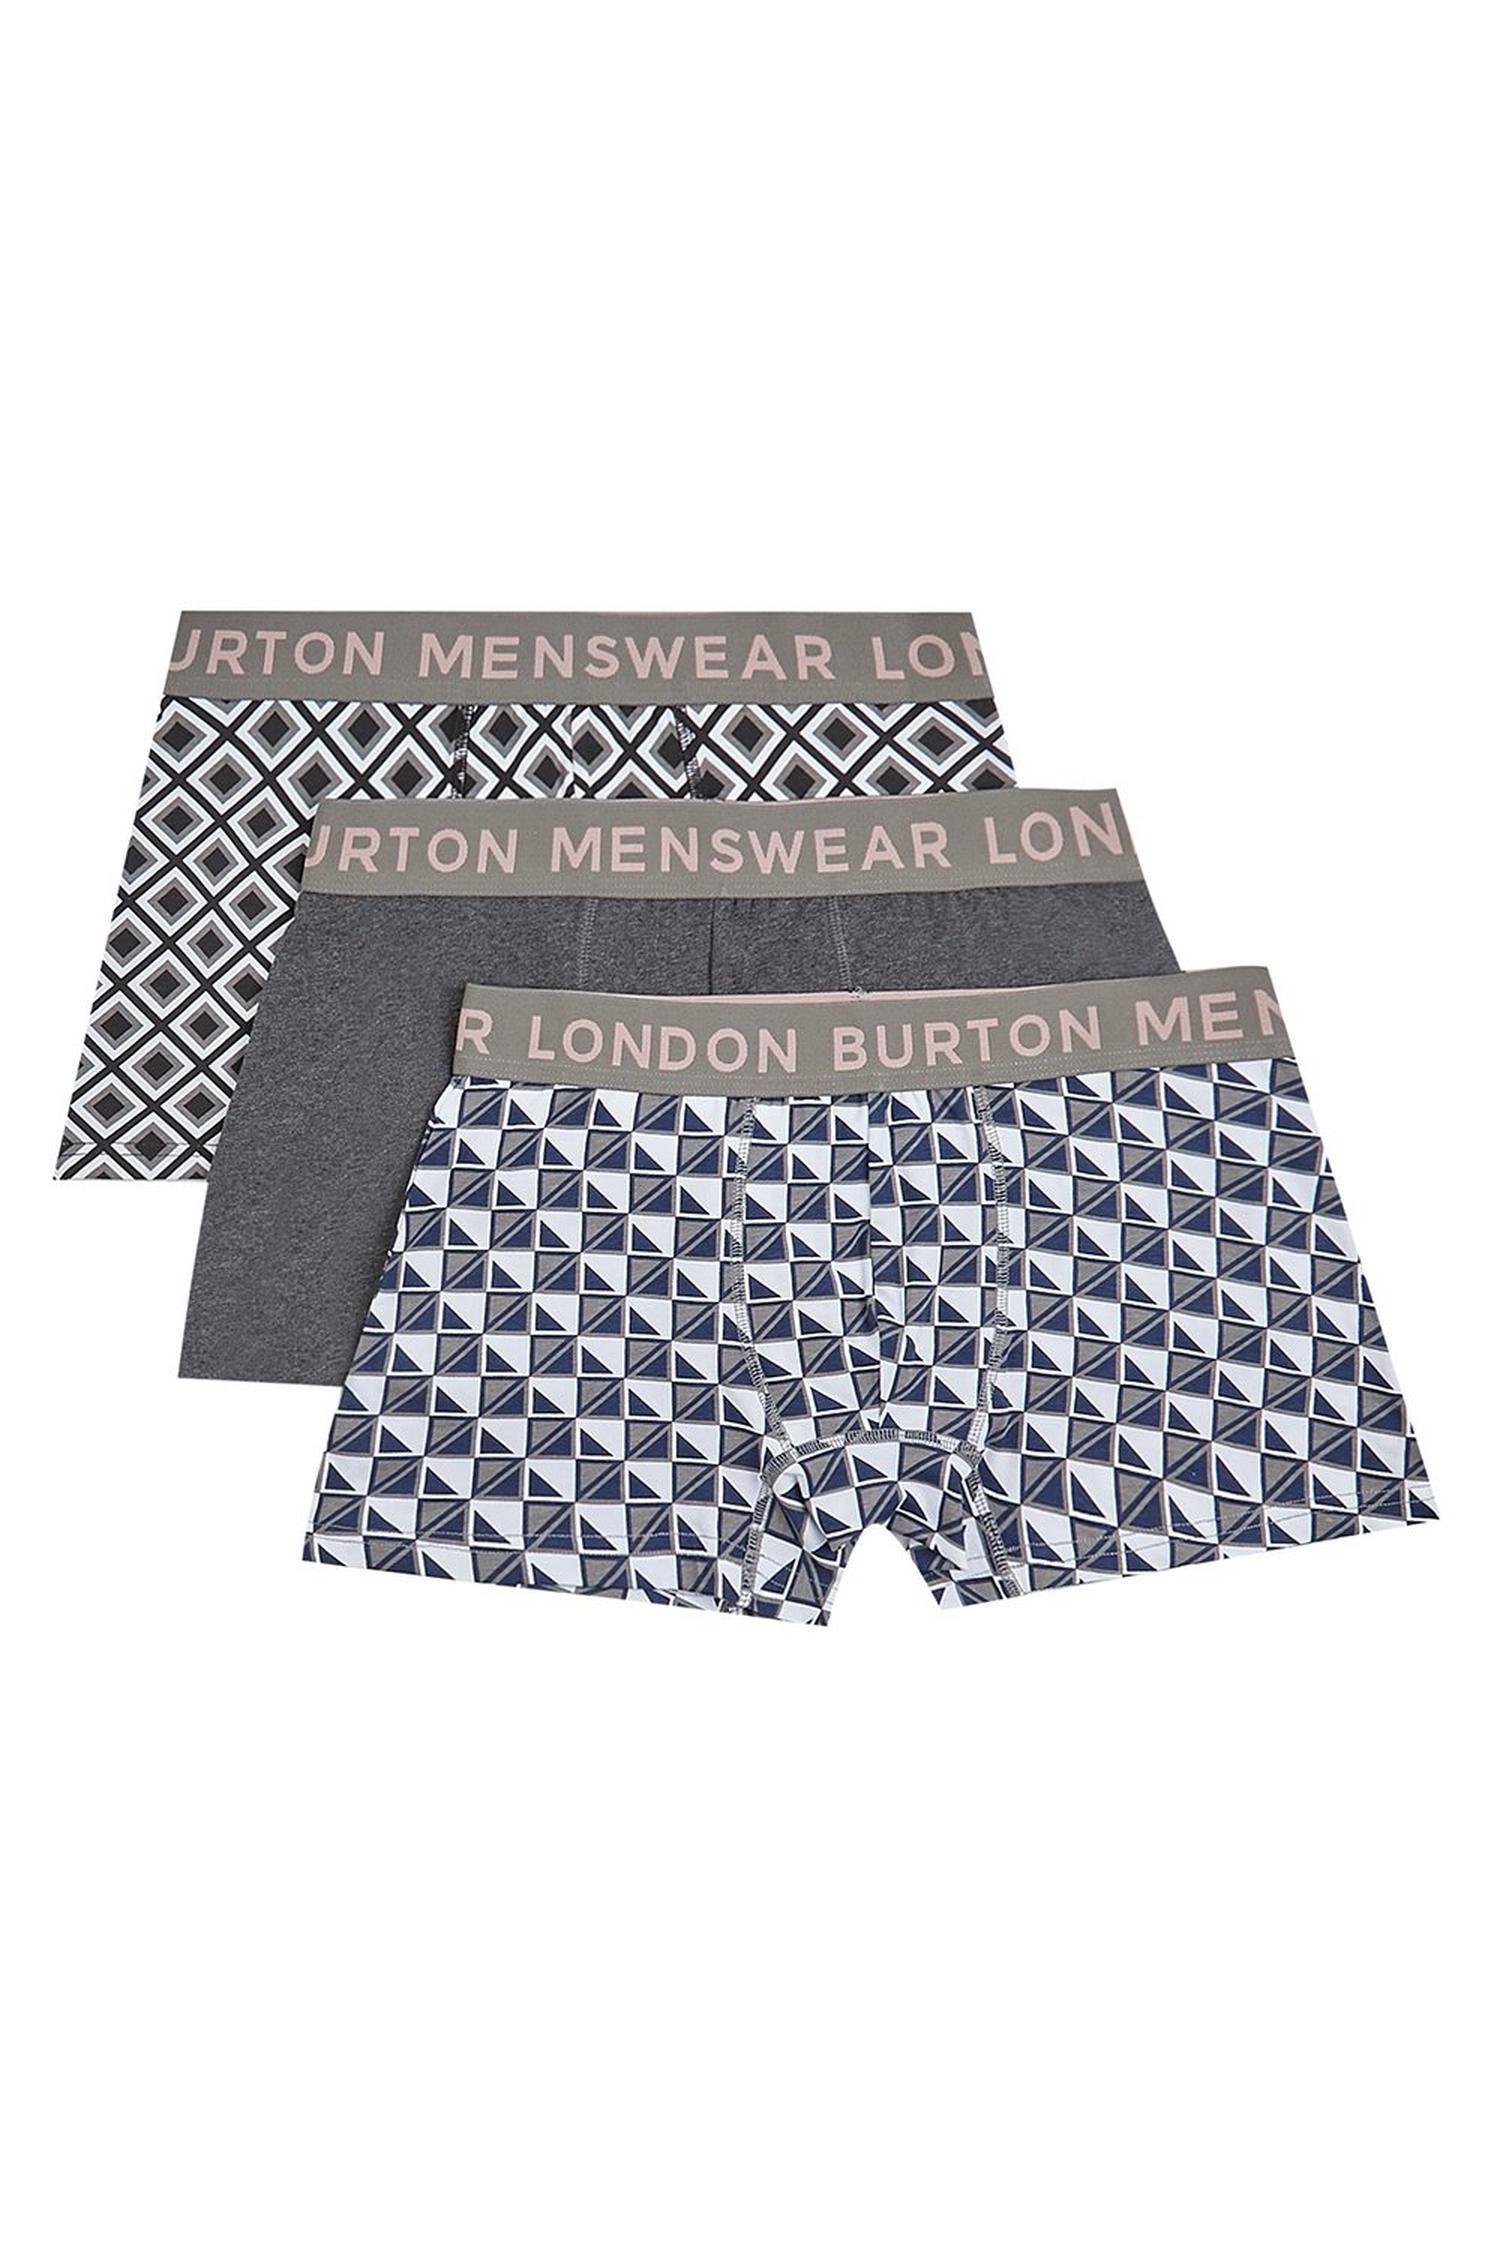 105 3 Pack Monochrome Geometric Print Trunks image number 1